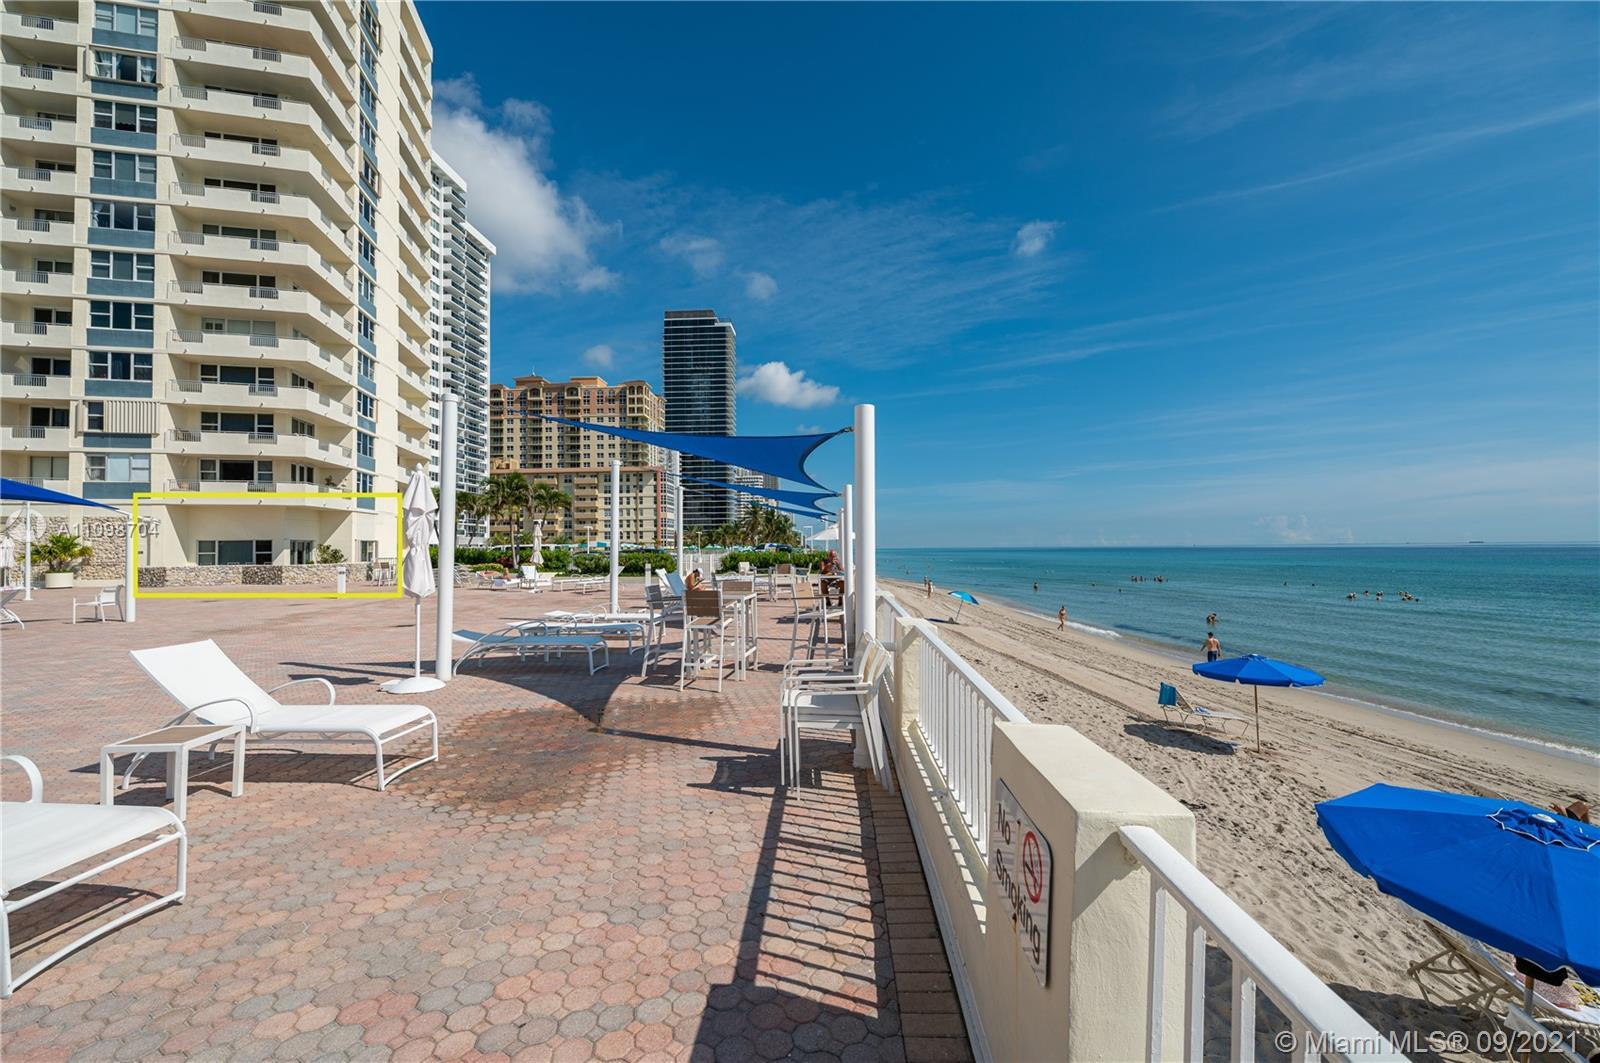 Welcome to one of the most unique condos in the zip code! 100 steps to the sand! This rare corner un